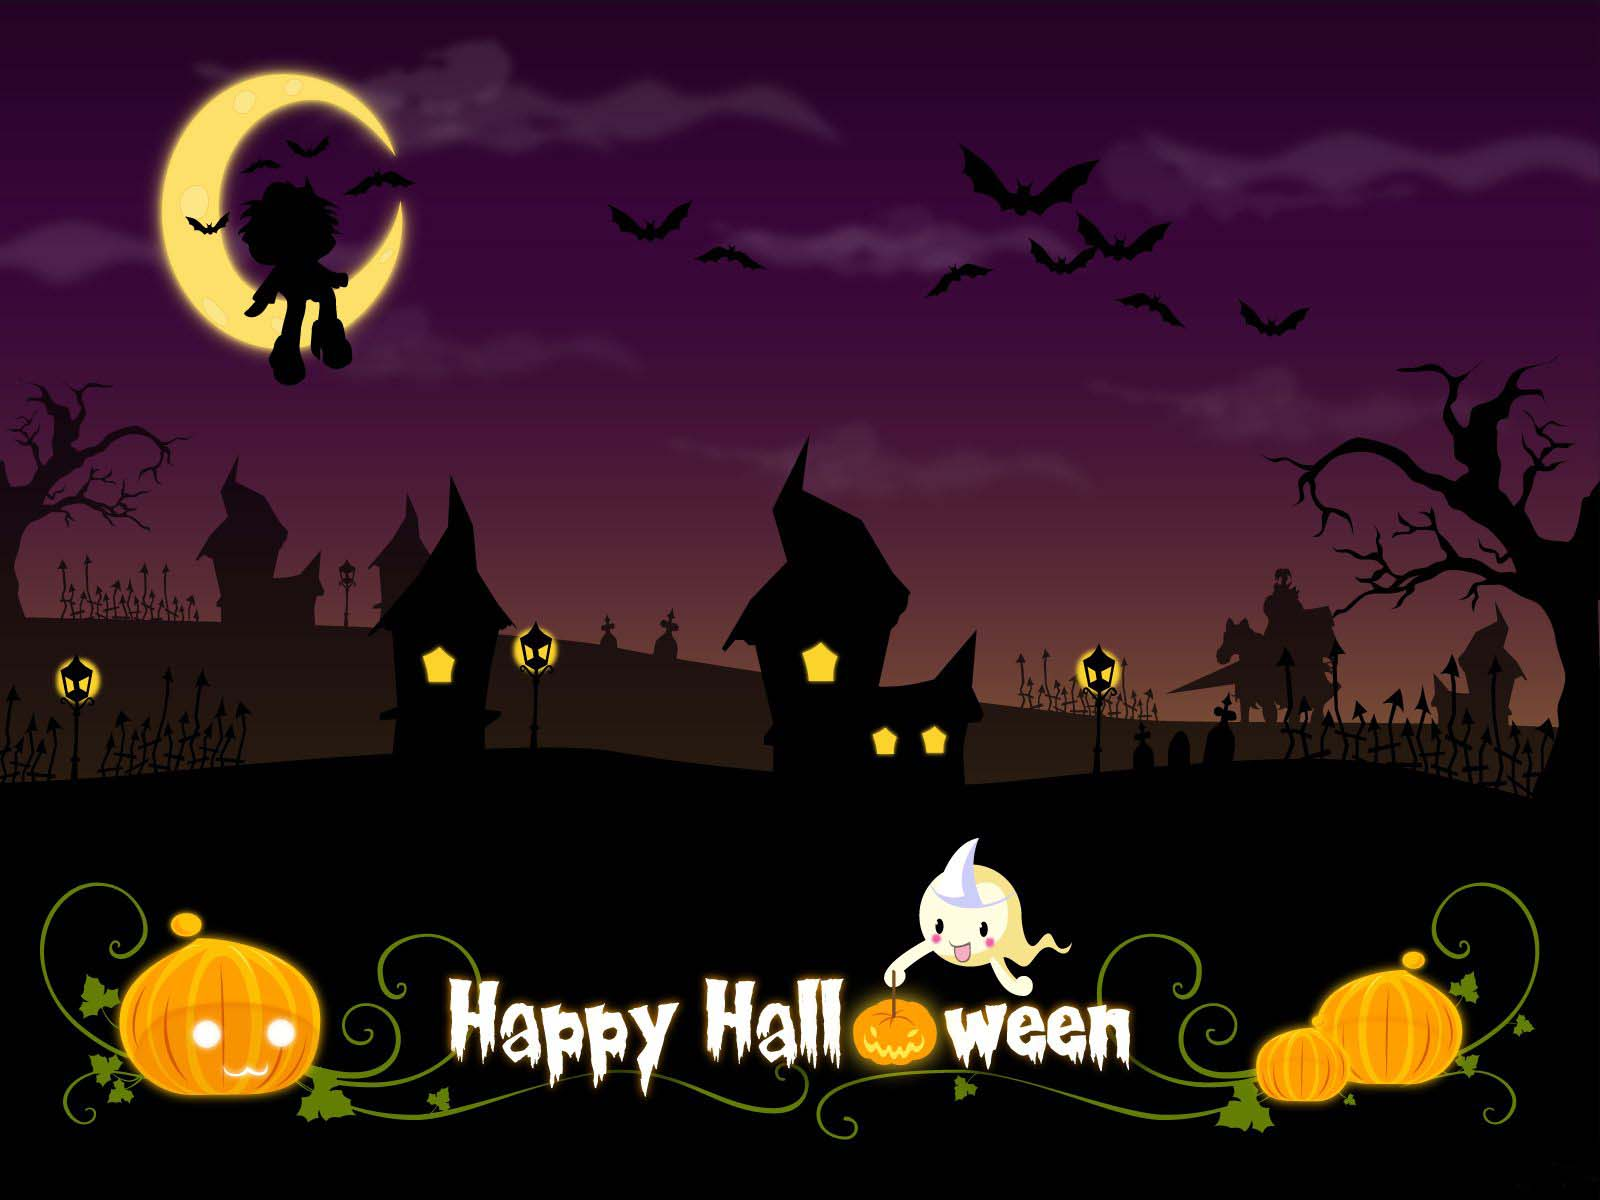 Delightful Happy Halloween Wallpaper